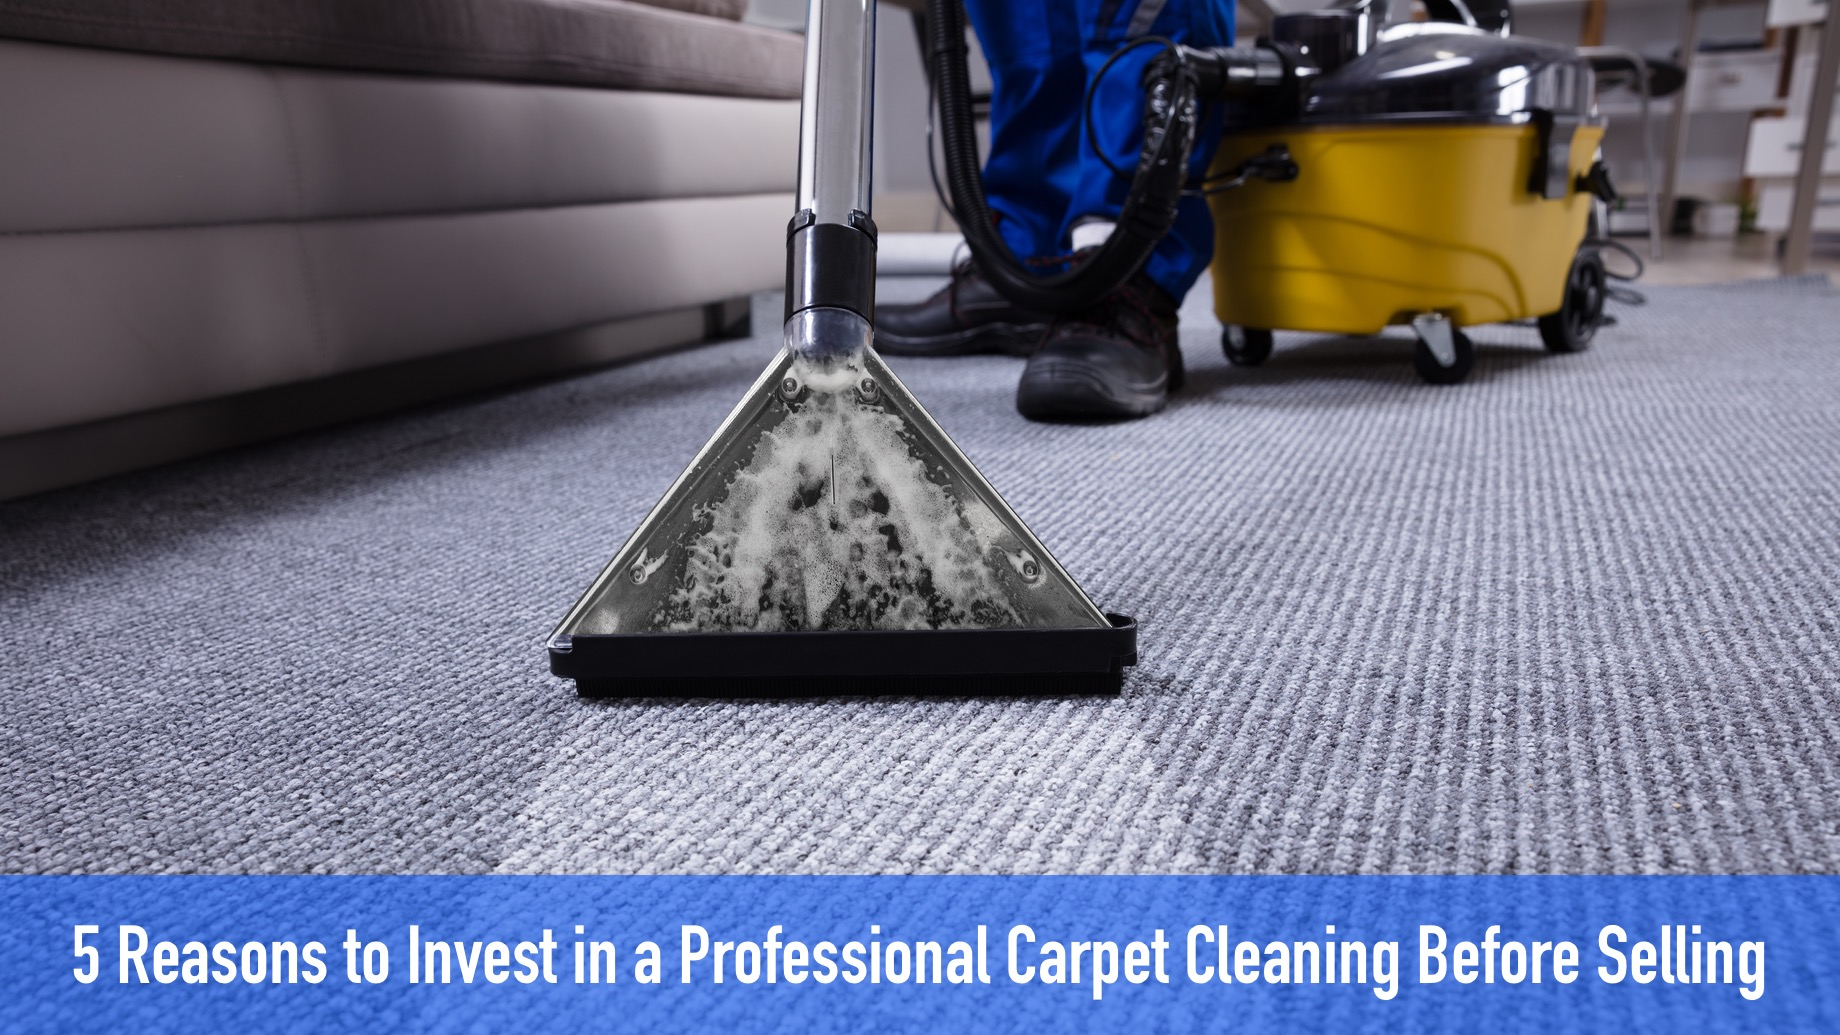 5 Reasons to Invest in a Professional Carpet Cleaning Before Selling